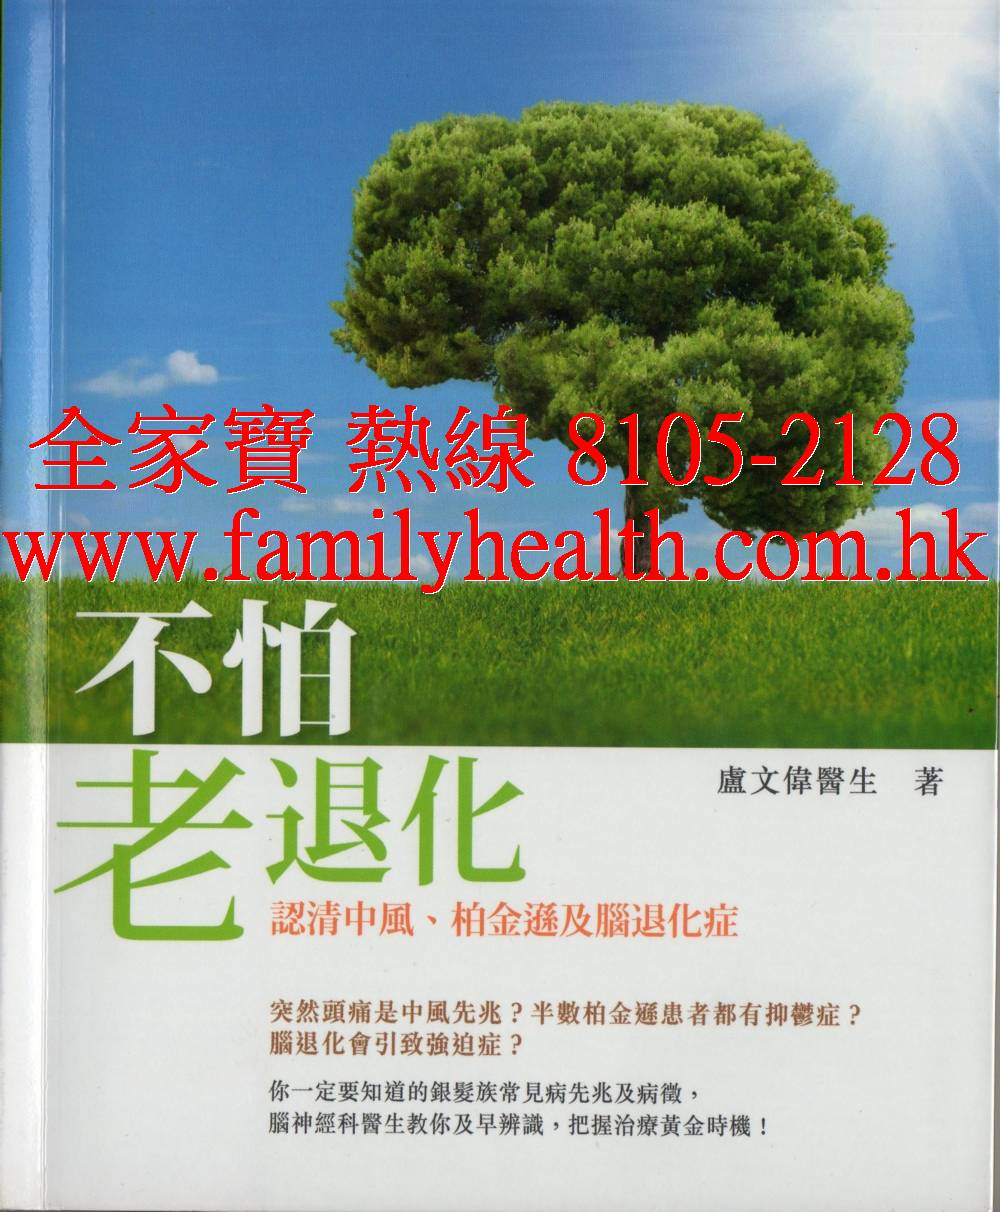 http://www.familyhealth.com.hk/files/full/878_0.jpg